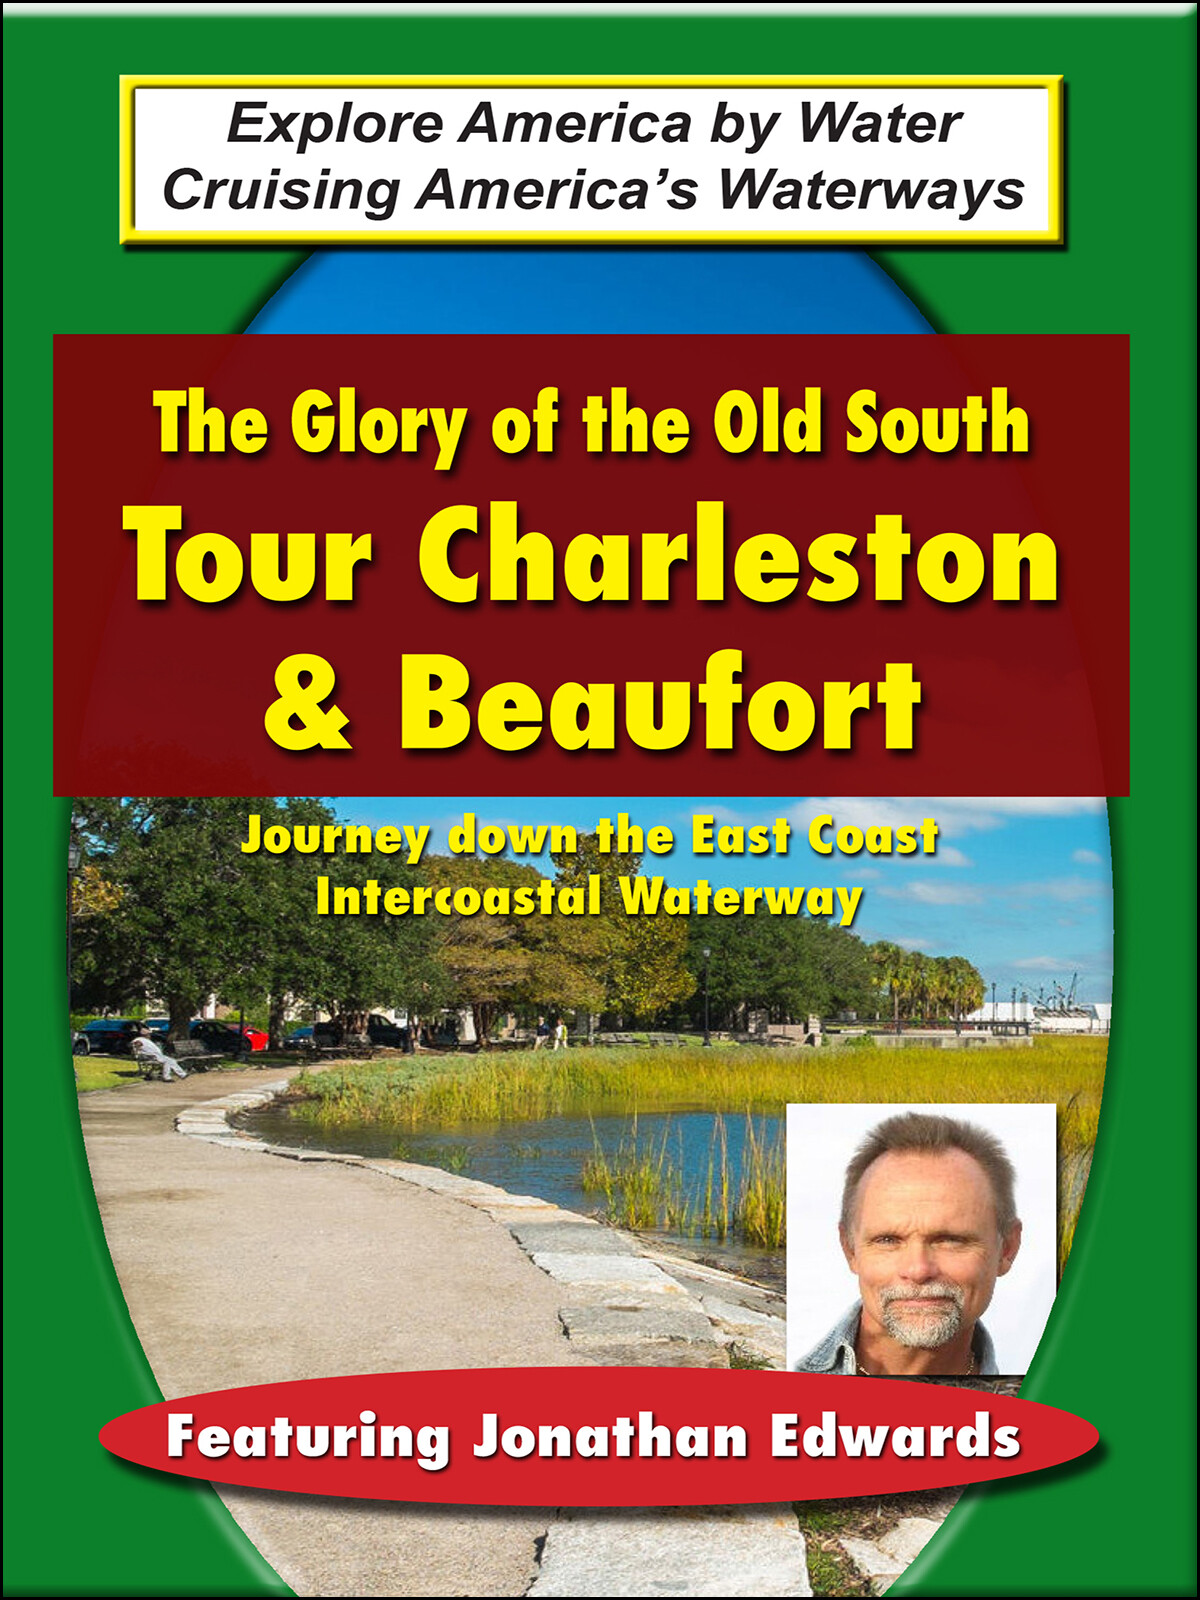 T8895 - The Glory of The Old South Tour Charleston & Beaufort